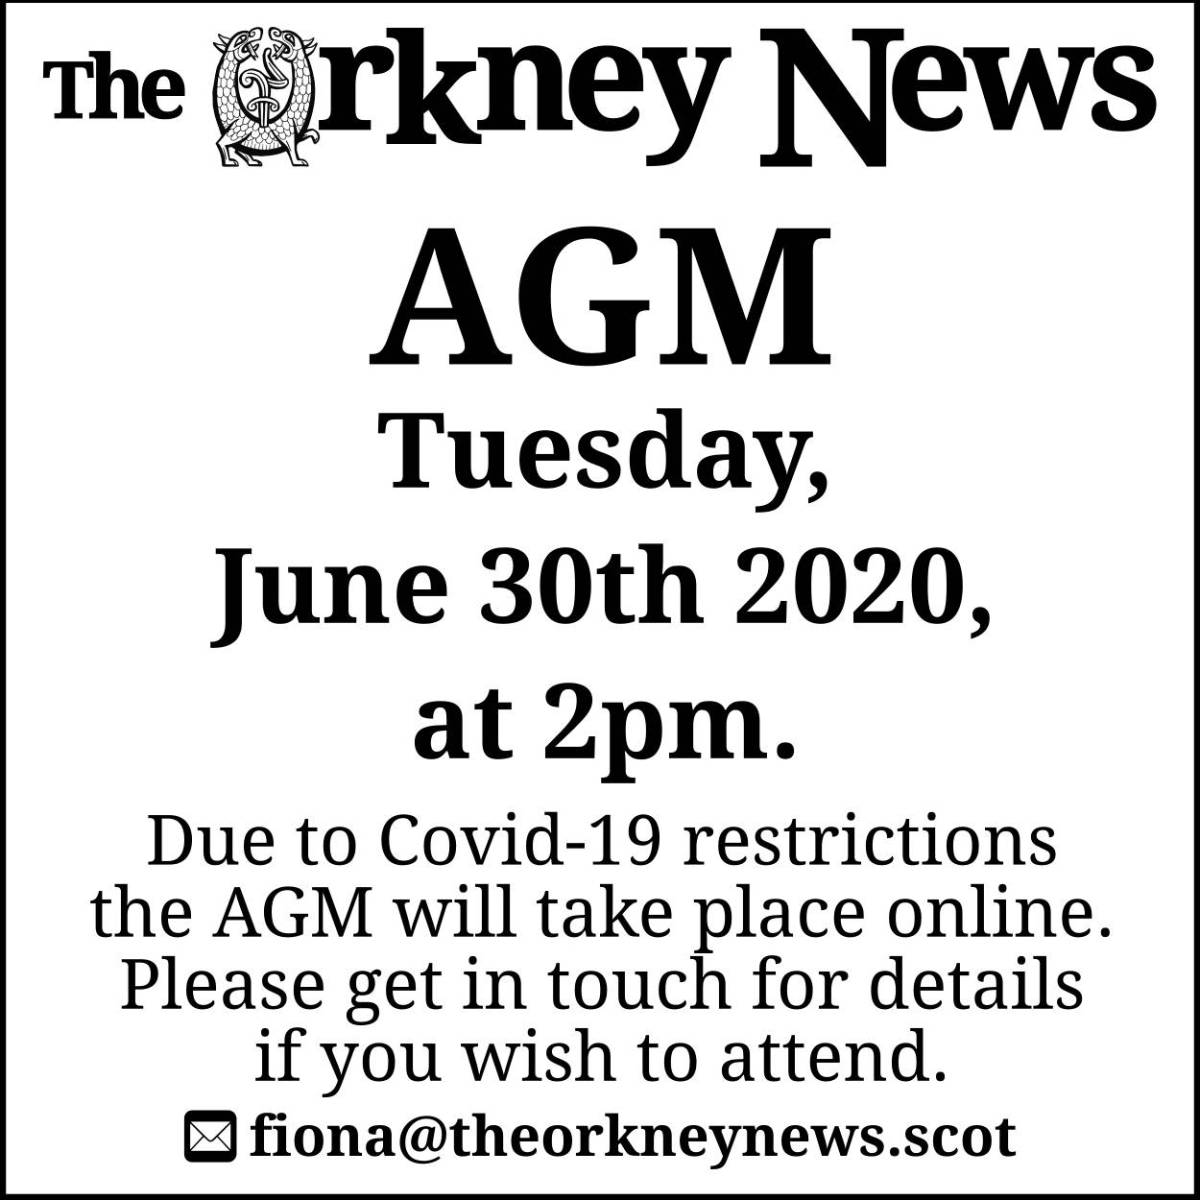 The Orkney News AGM will be held on Tuesday June 30th 2020 at 2pm. Due to Covid-19 restrictions it will be held online. Email fiona@theorkneynews.scot if you would like to attend.